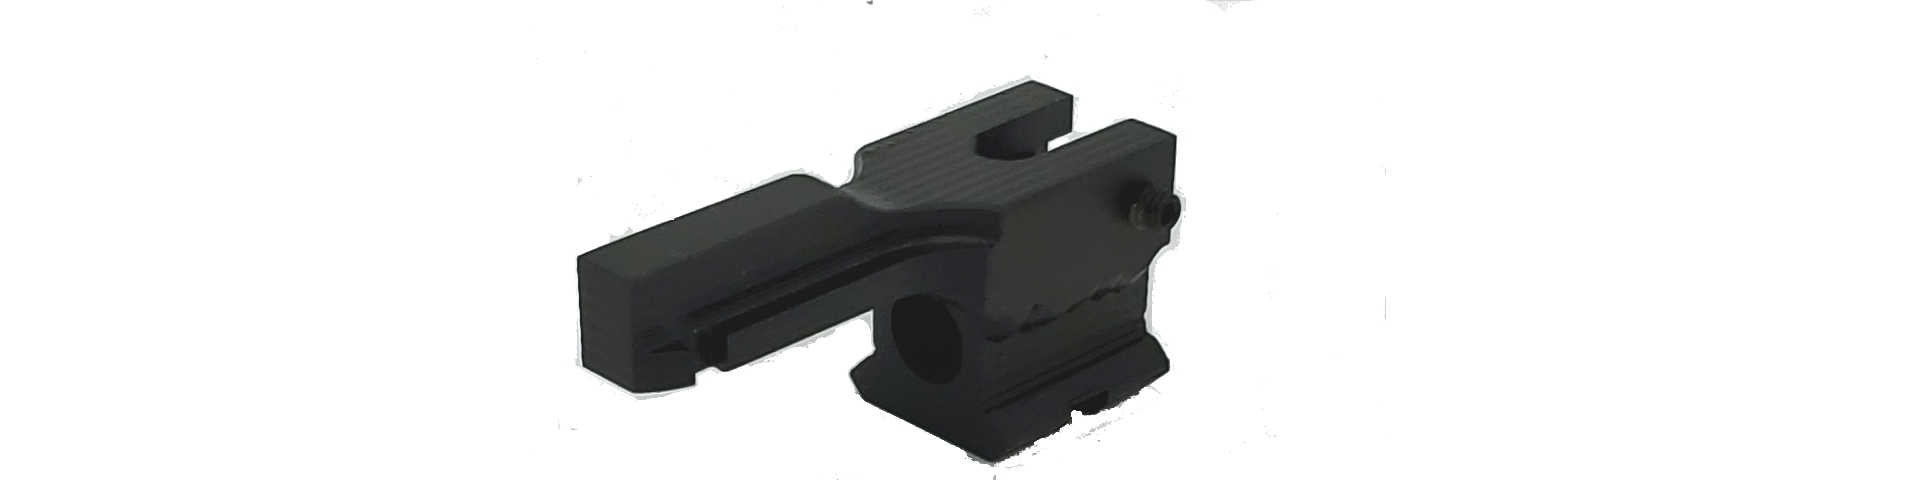 https://www.triple-r-products.com/catalog/bayonet-extensions-extenders-and-adapters/bayonet-extenders-and-adapters